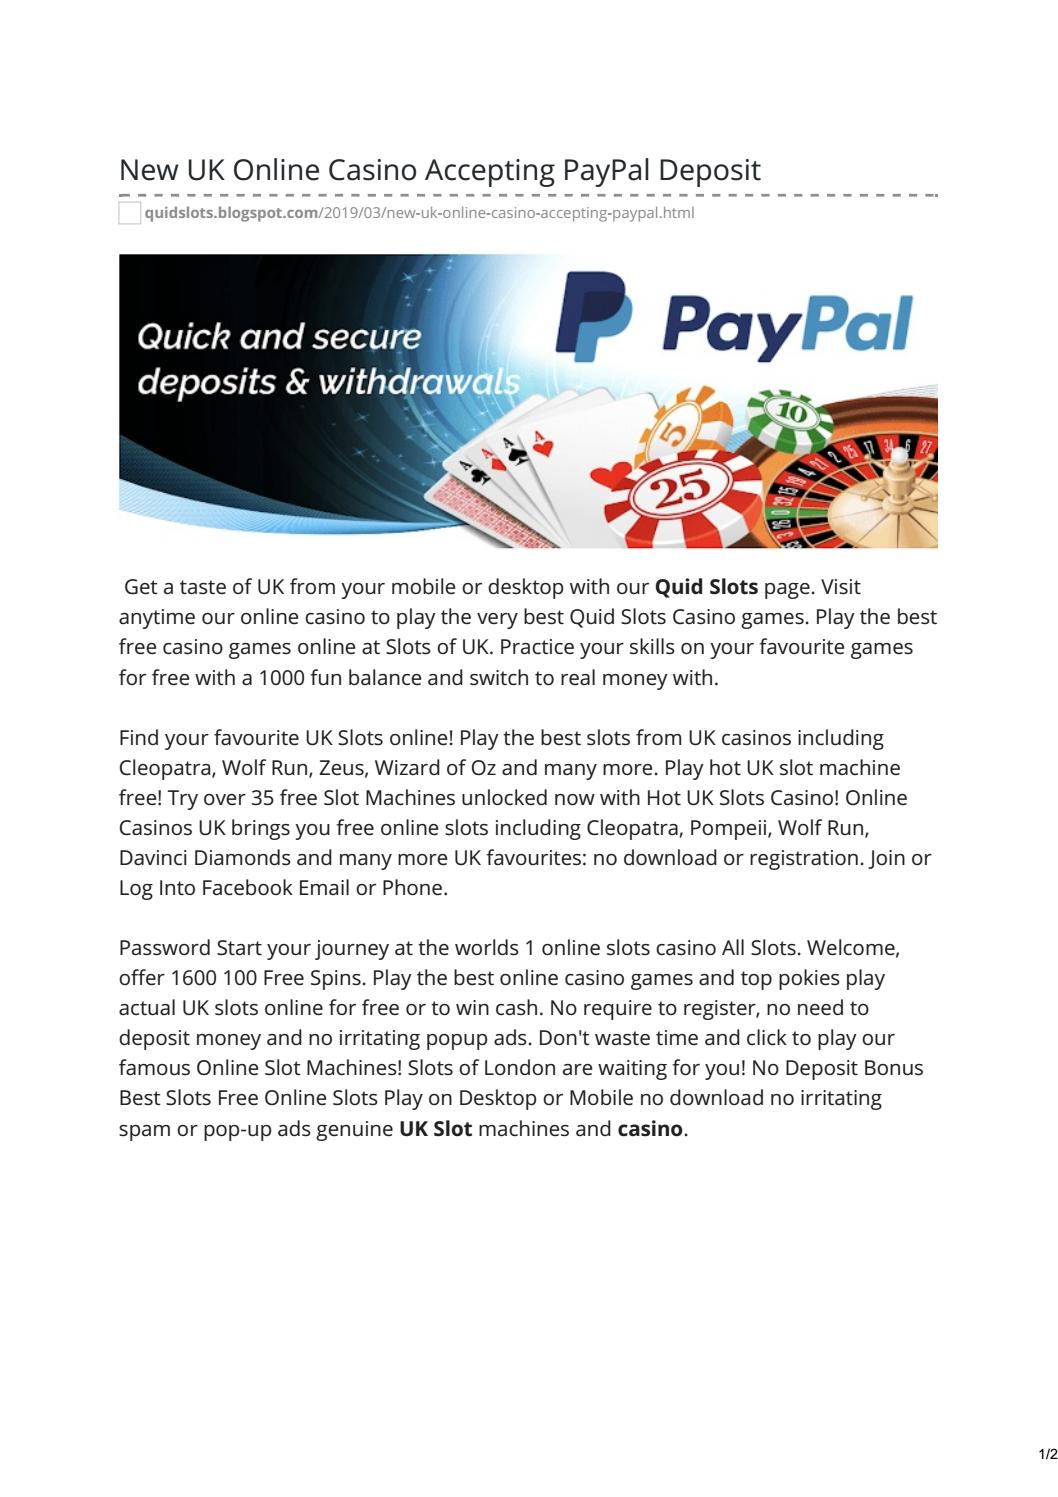 New Uk Online Casino Accepting Paypal Deposit By Quidslots Issuu